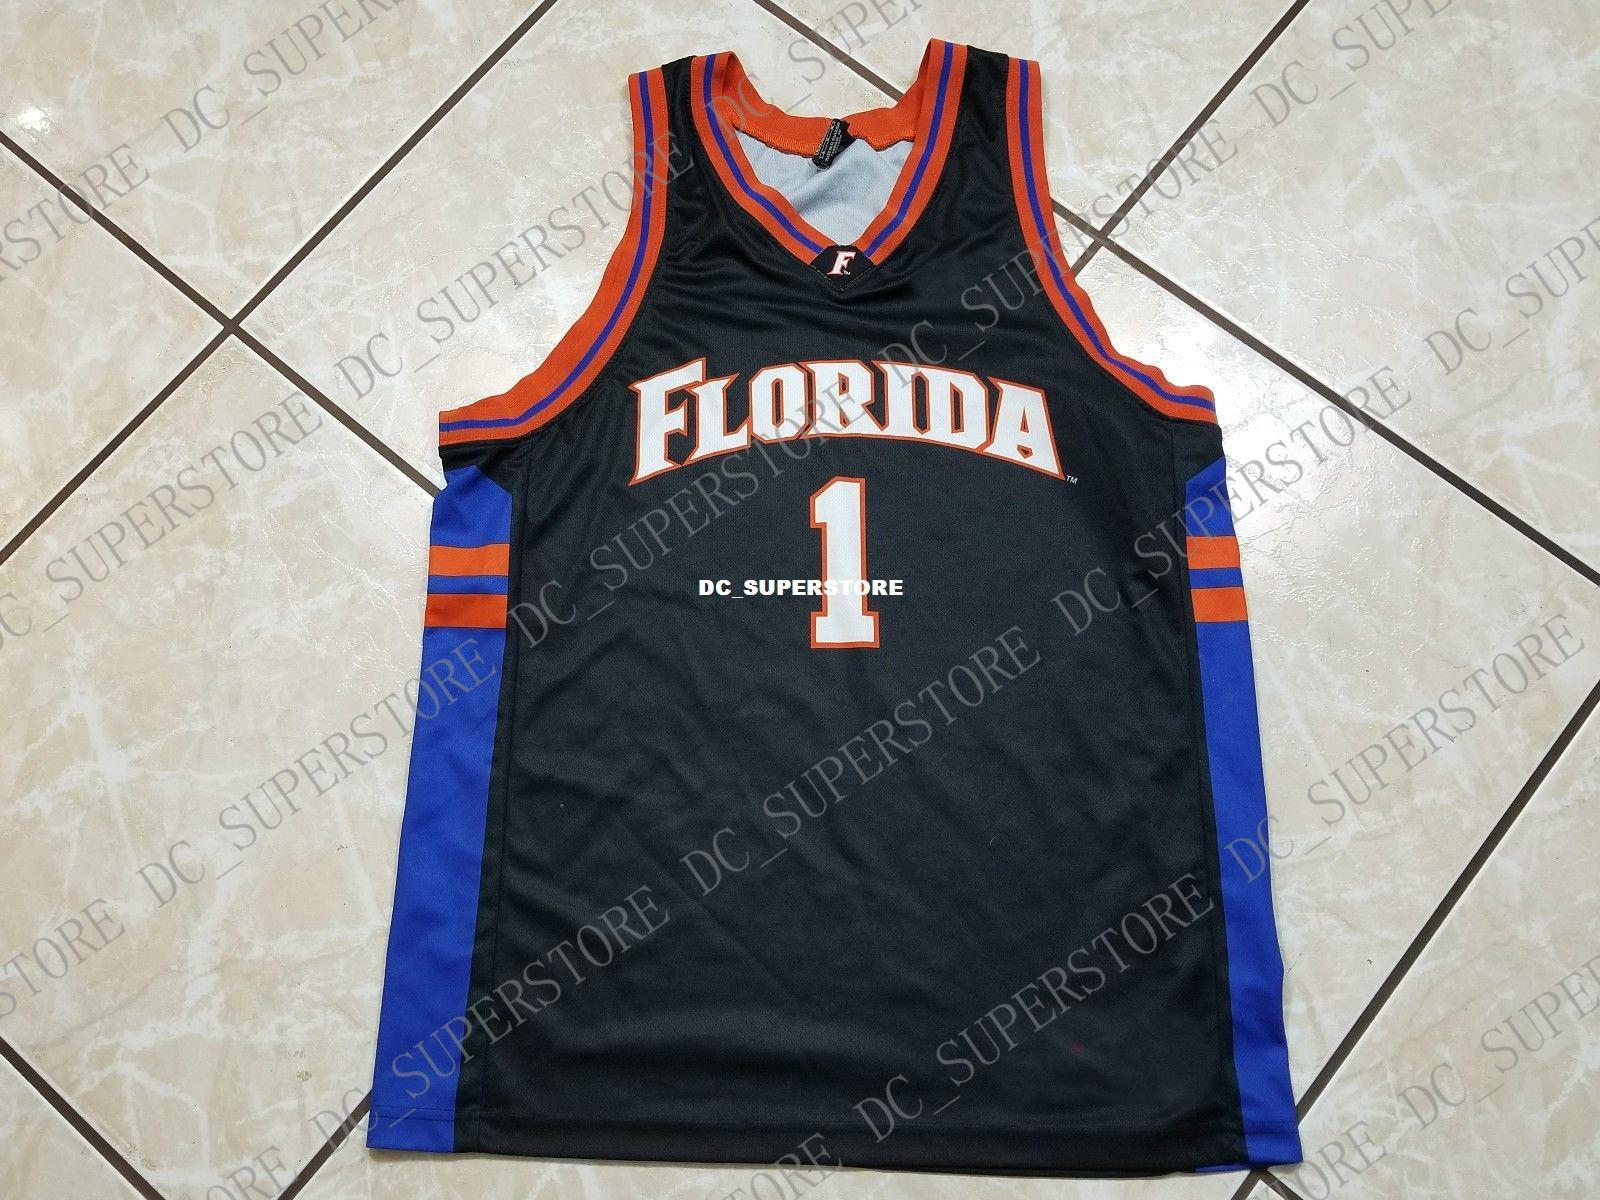 best service a876a d64f9 Cheap custom Vintage FLORIDA GATORS Basketball Jersey Black Stitched  Customize any number name MEN WOMEN YOUTH XS-5XL